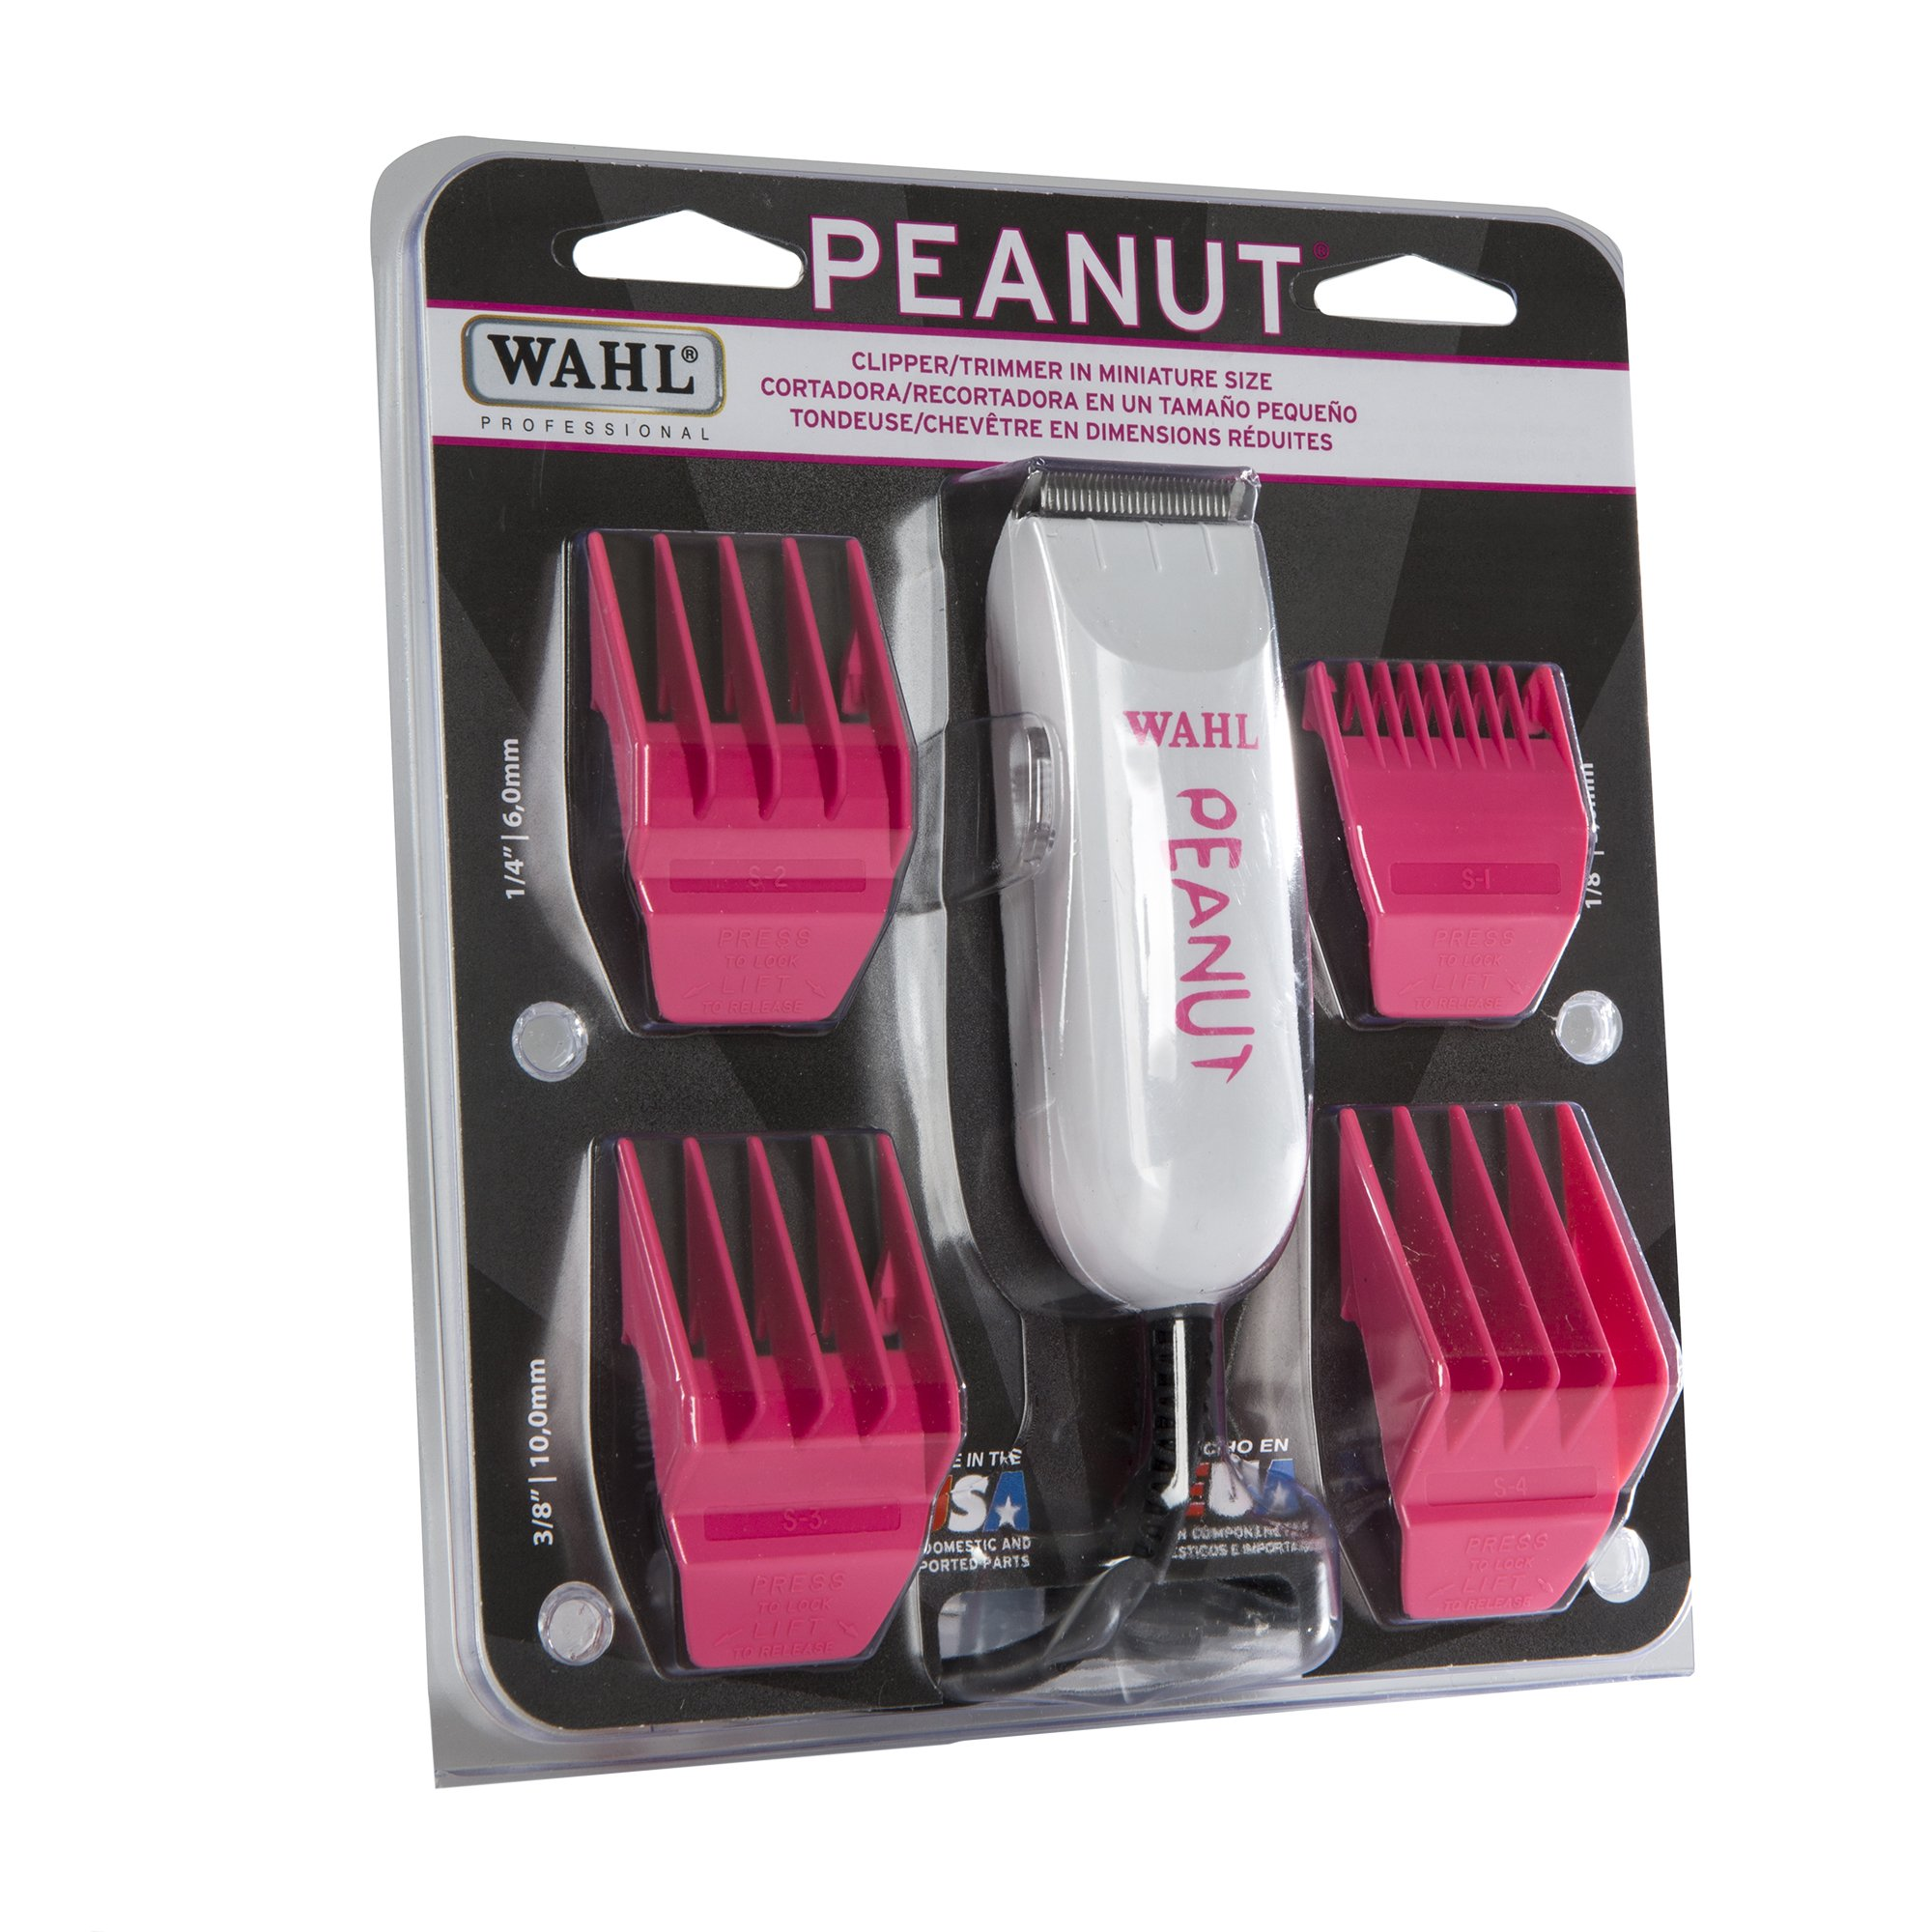 Wahl Professional Peanut Classic Clipper/Trimmer #8685-1701, Pink - Great for Barbers and Stylists - Powerful Rotary Motor